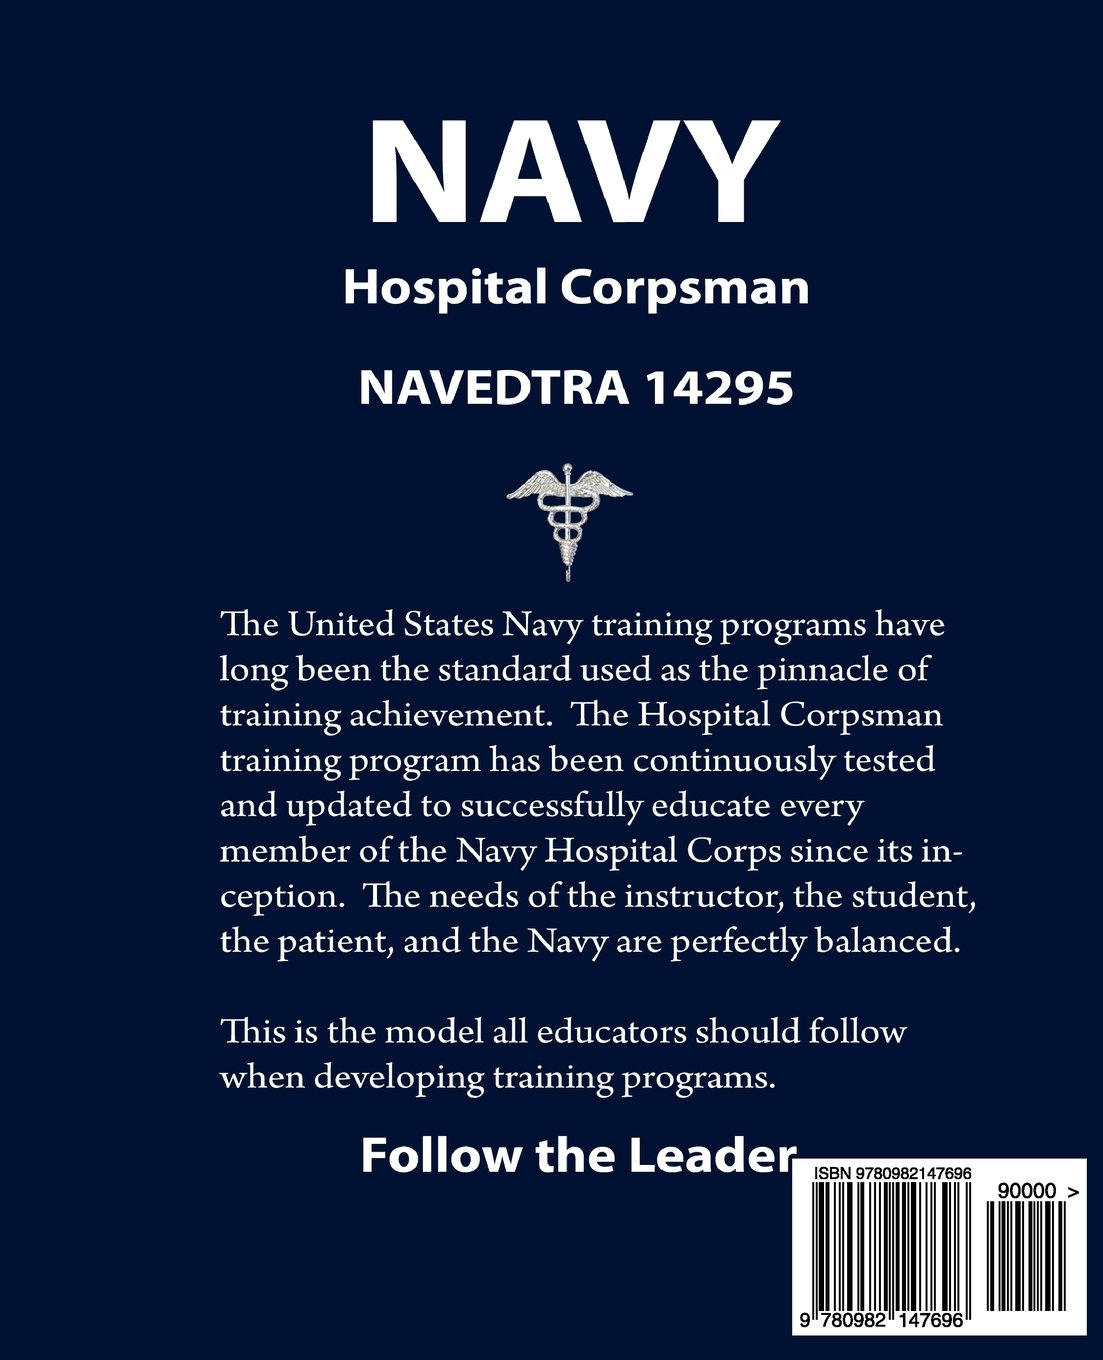 Navy Hospital Corpsman: NAVEDTRA 14295 Following the Model for Military  Education: Mindy J. Allport-Settle: 9780982147696: Amazon.com: Books